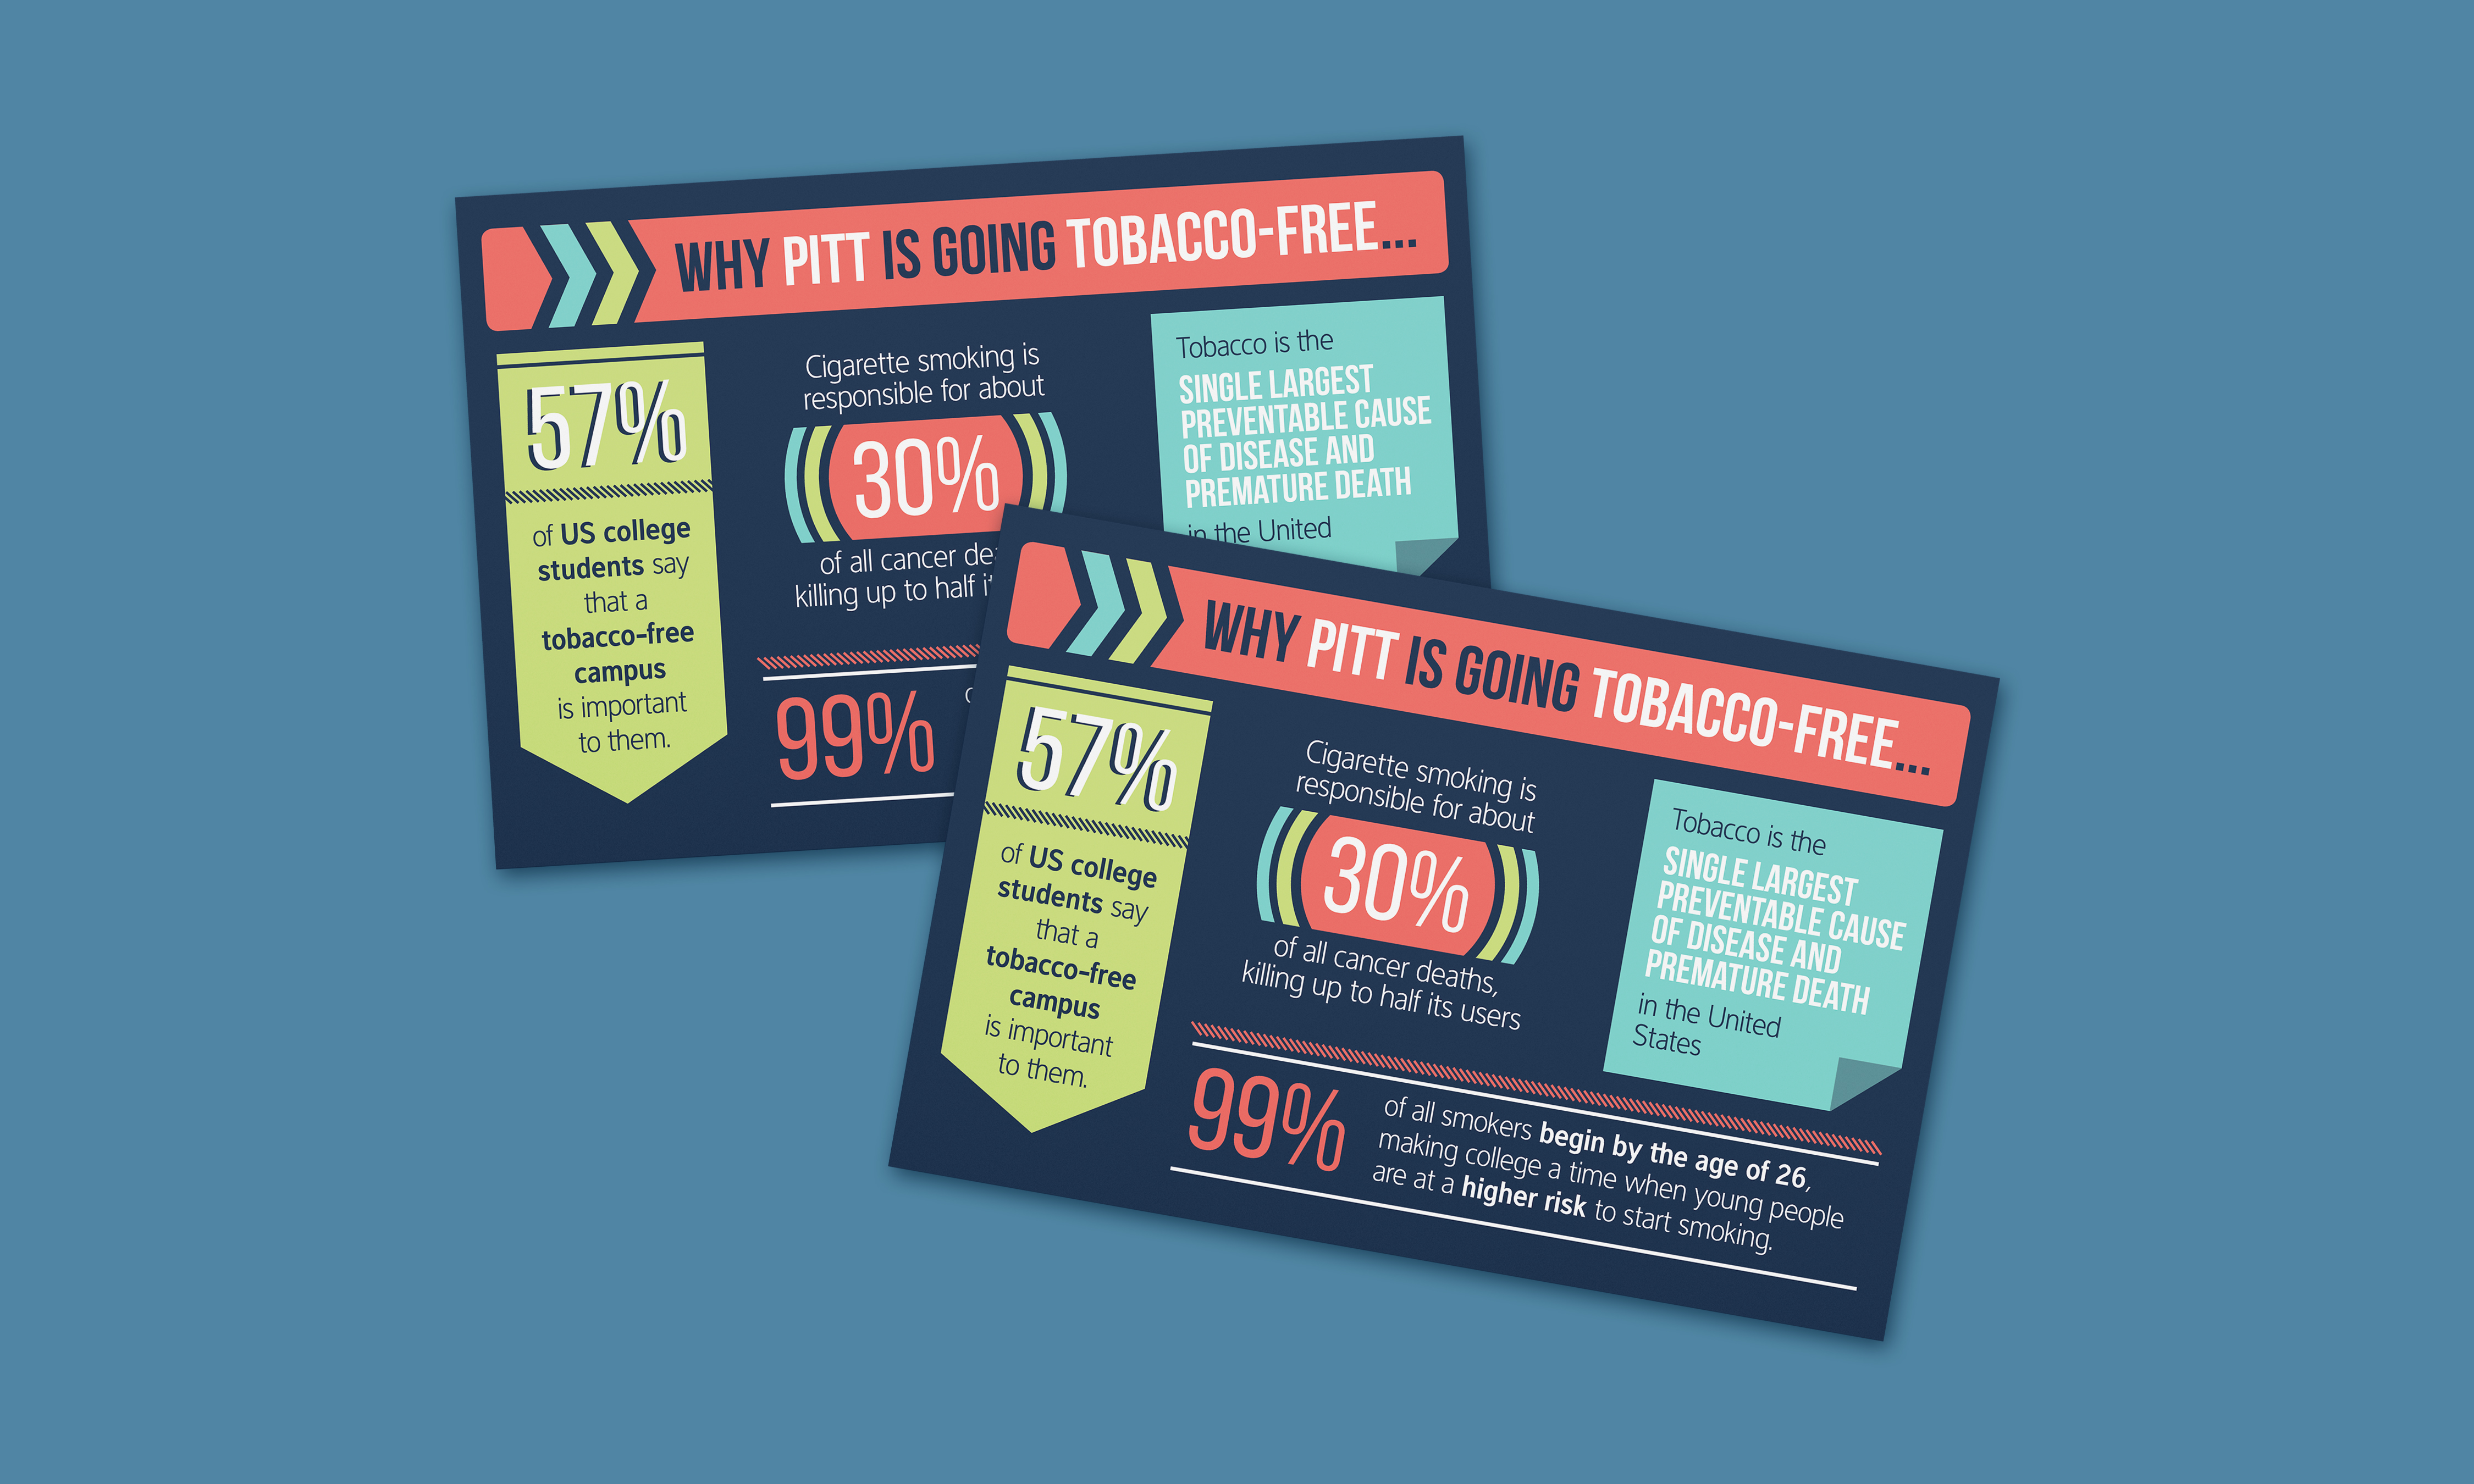 """A mockup of two postcards over a blue background. The cards have a dark blue background and feature various infographic/statistical elements in lime green, coral, light teal blue, and white. The title is """"Why Pitt is Going Tobacco-Free..."""""""